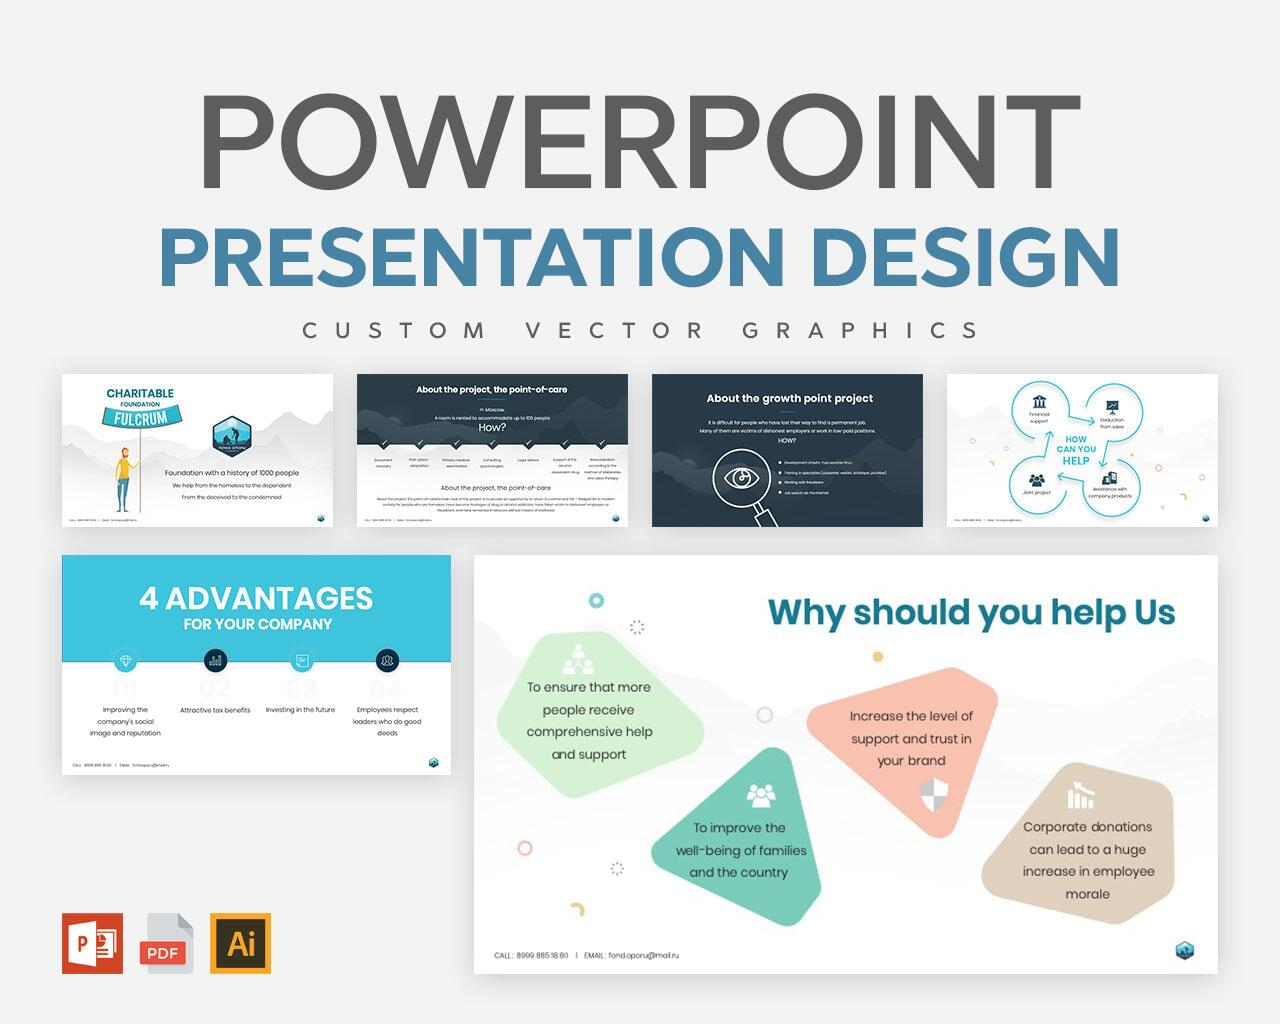 Professional Powerpoint Presentation Design  by Graphicsc - 117537